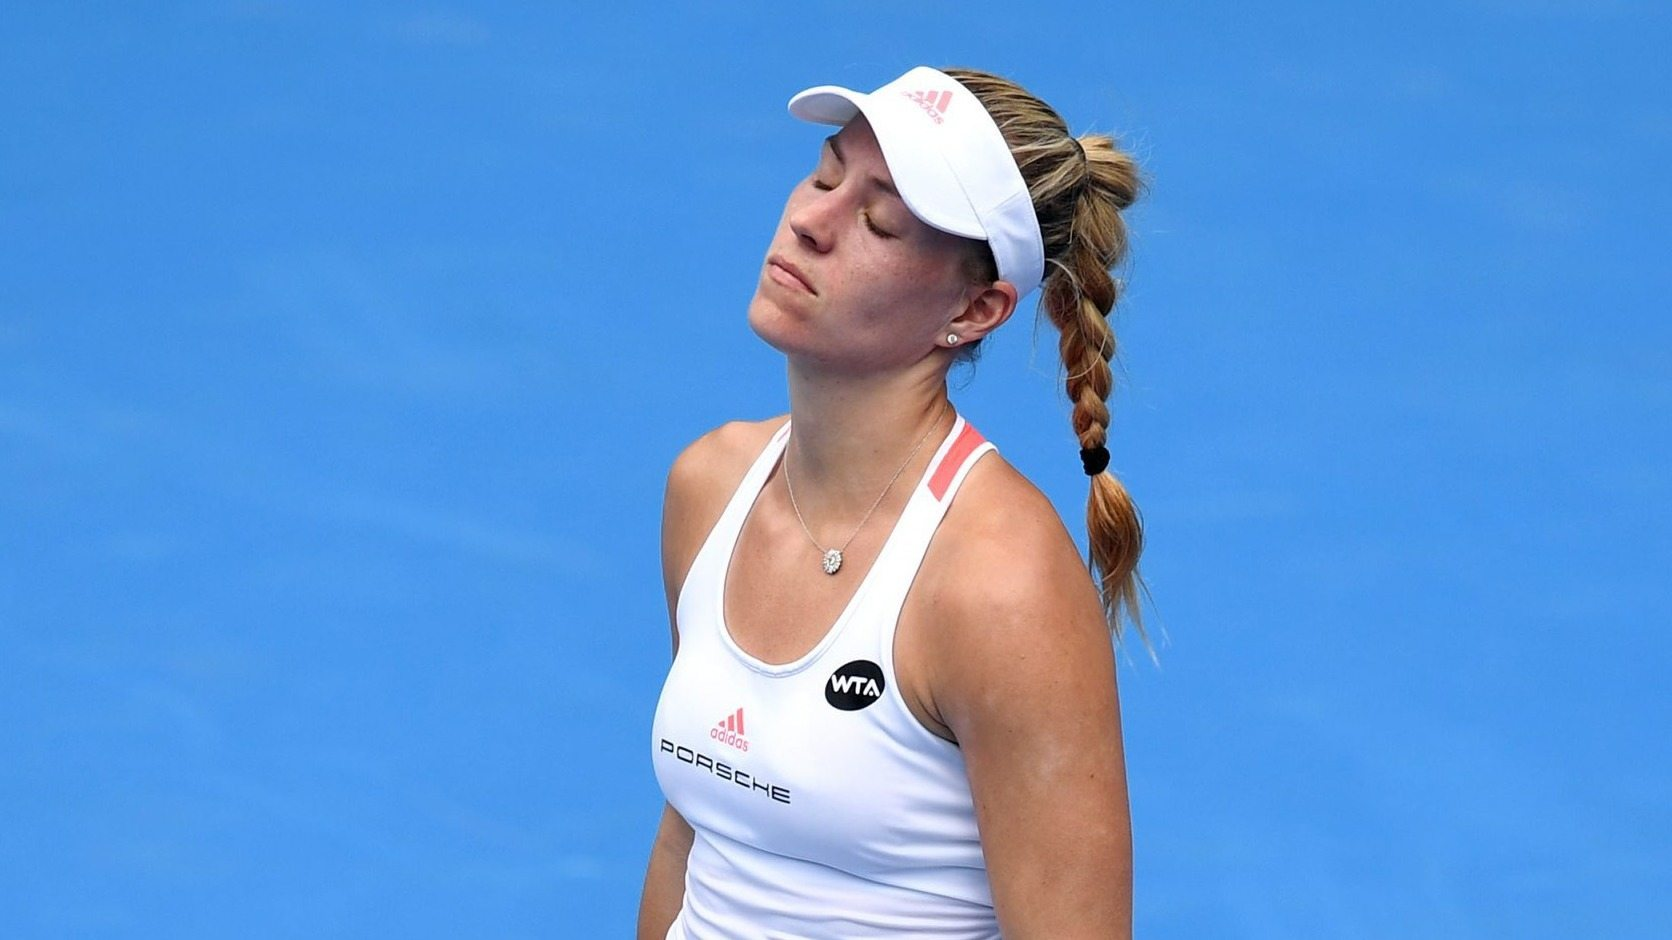 Angelique Kerber - fotó: EPA/Paul Miller